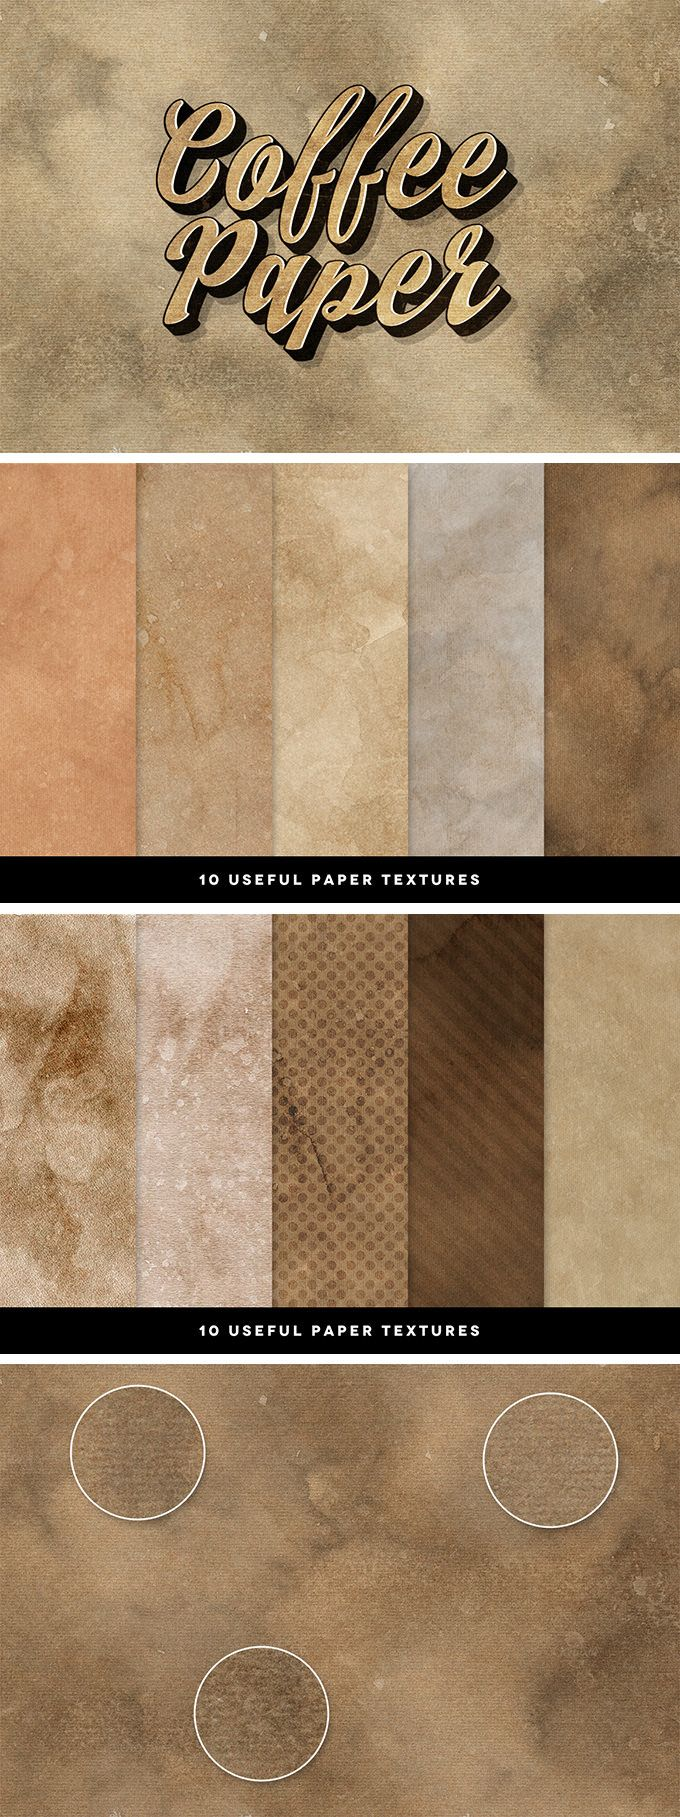 10 Coffee Paper Textures - download freebie by PixelBuddha